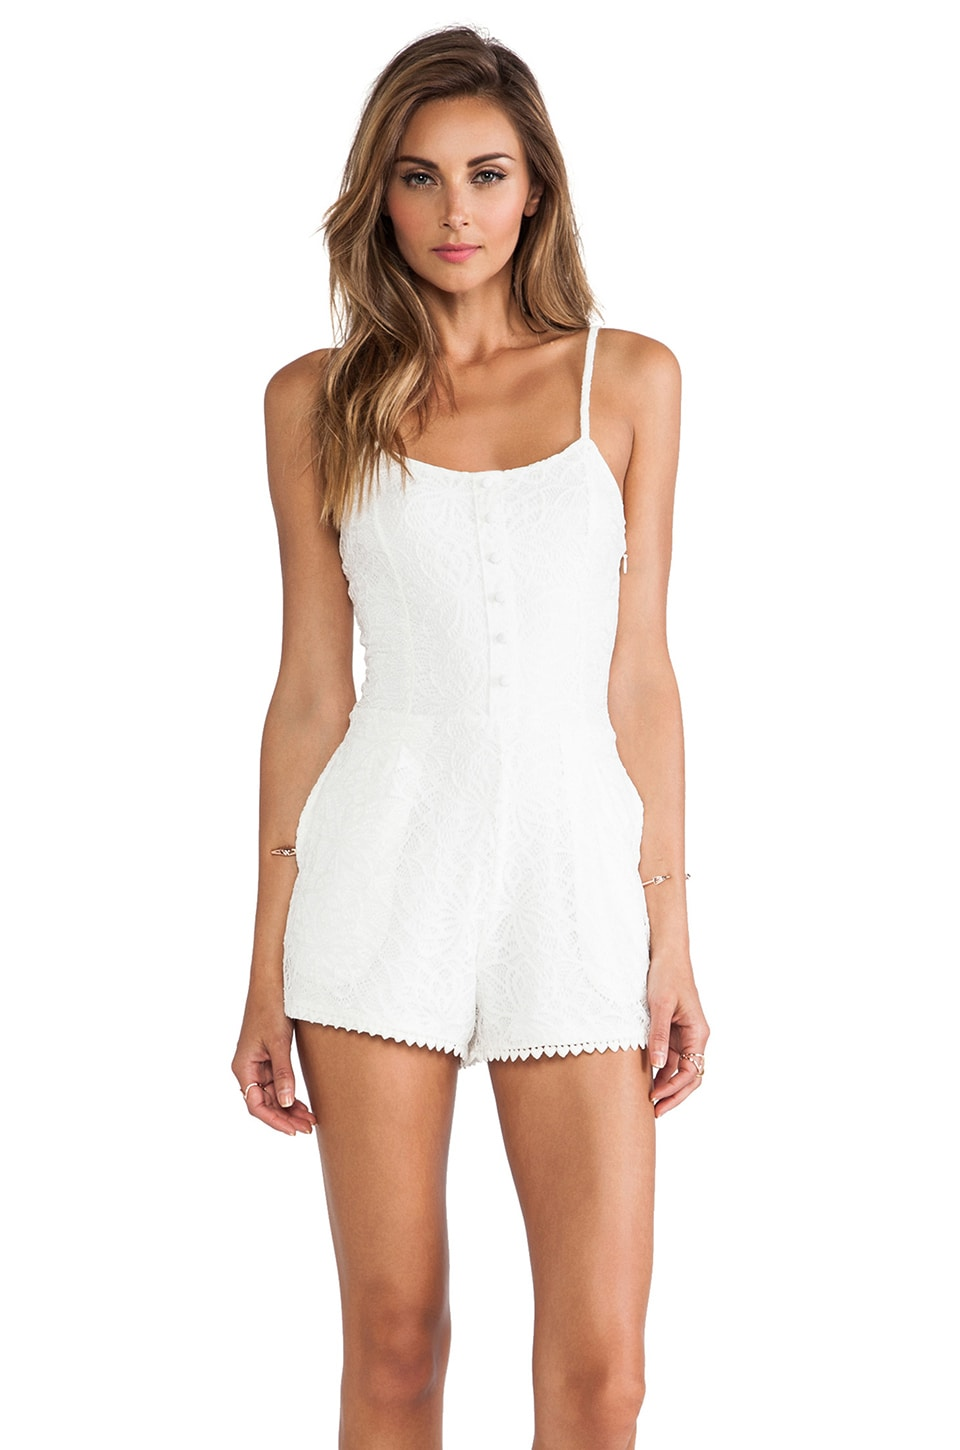 Lovers + Friends Escape Romper in White Lace